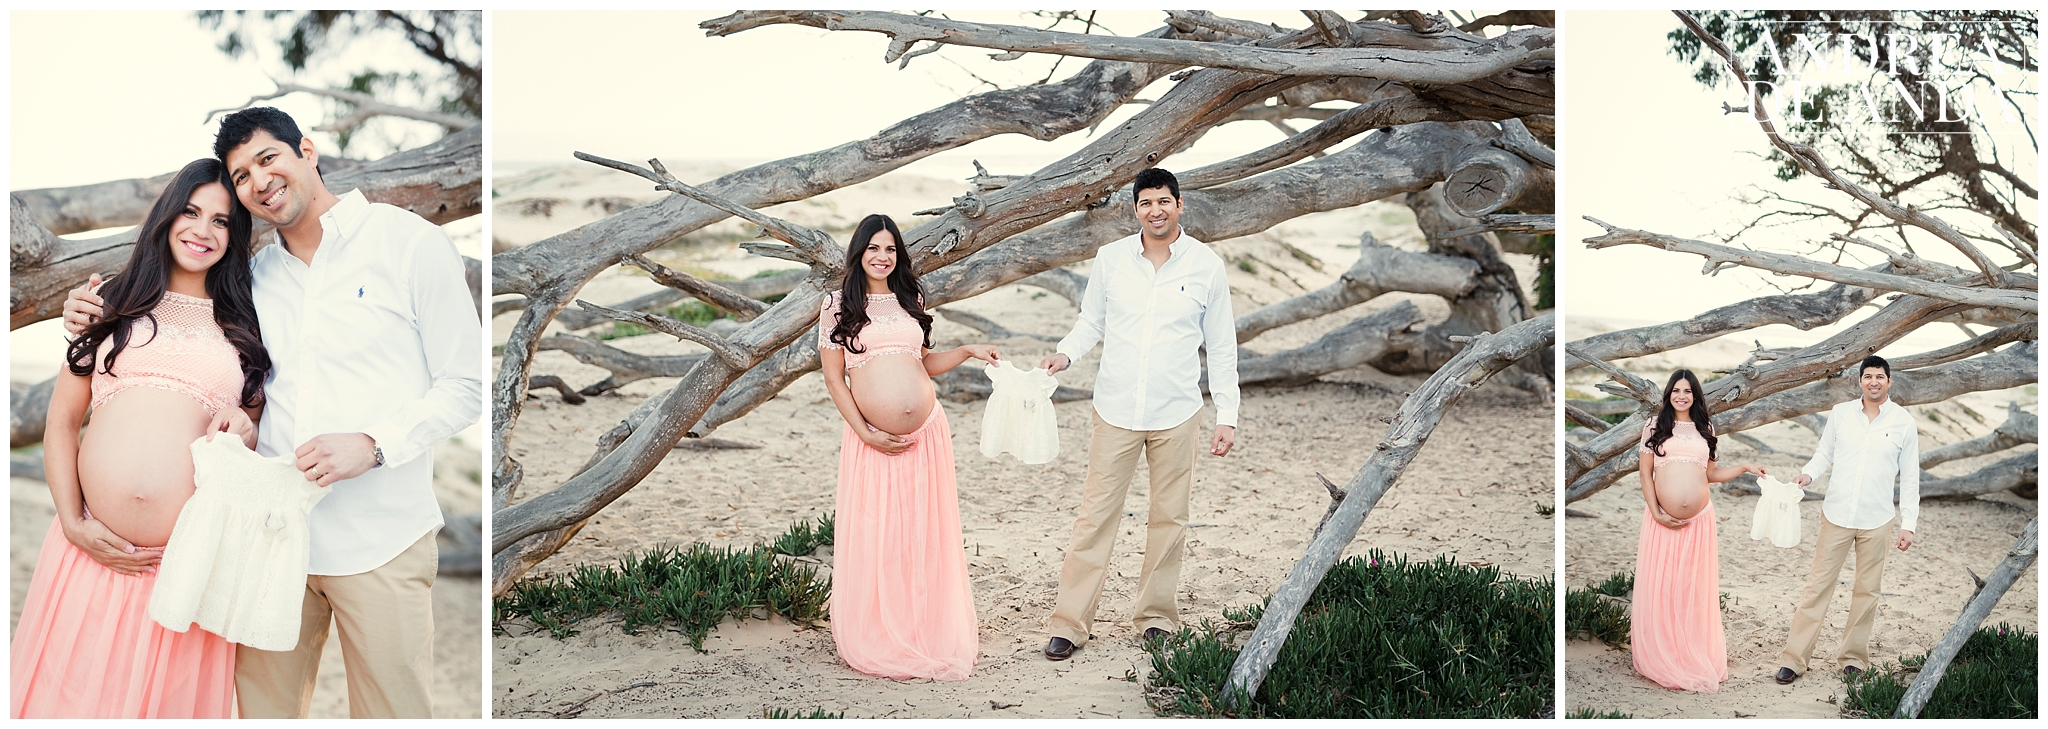 Pismo beach maternity session_ Andrea de Anda Photography__0009.jpg